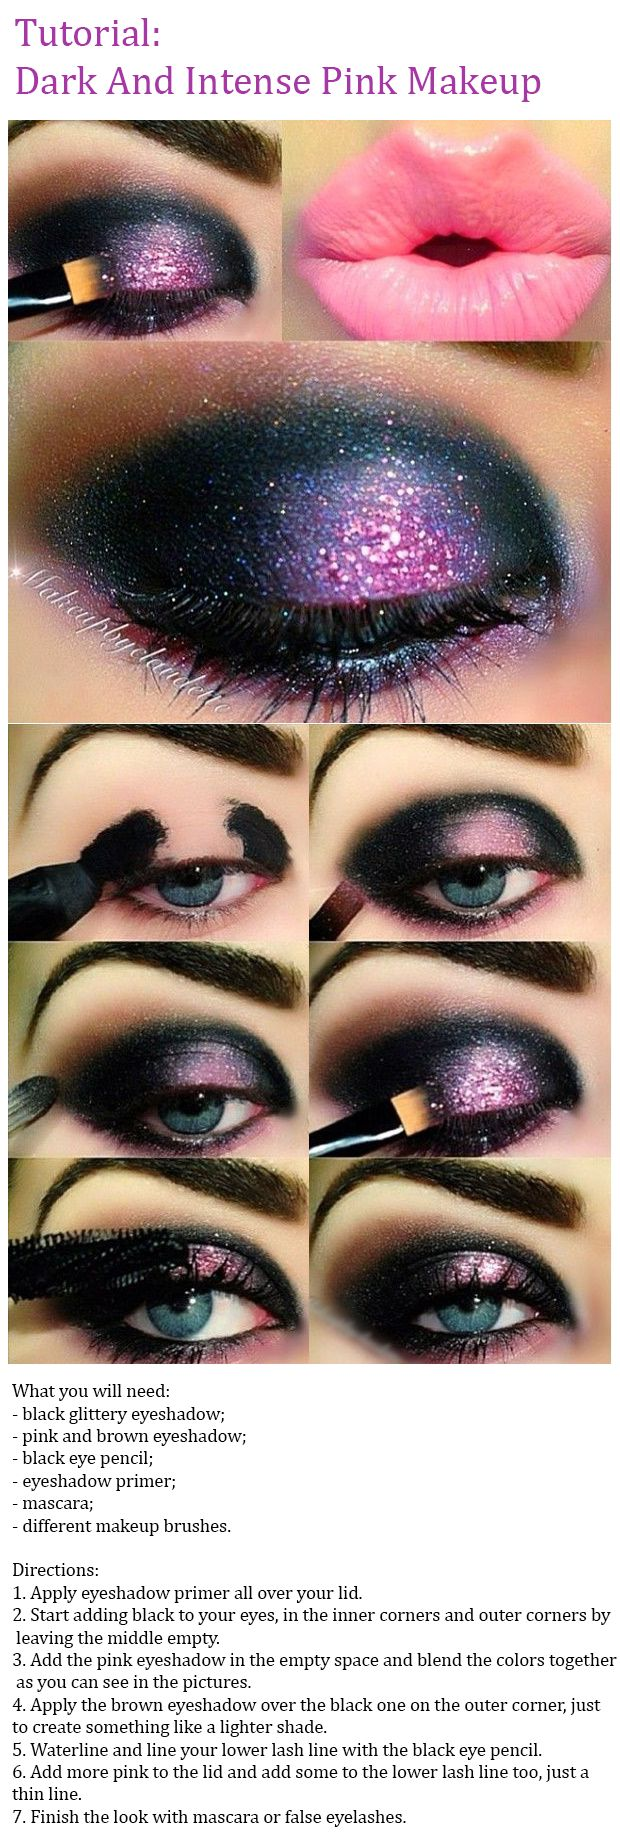 Dark And Intense Pink Makeup Tutorial | Step-By-Step Tutorial I Check out this bold and amazing pink eye makeup